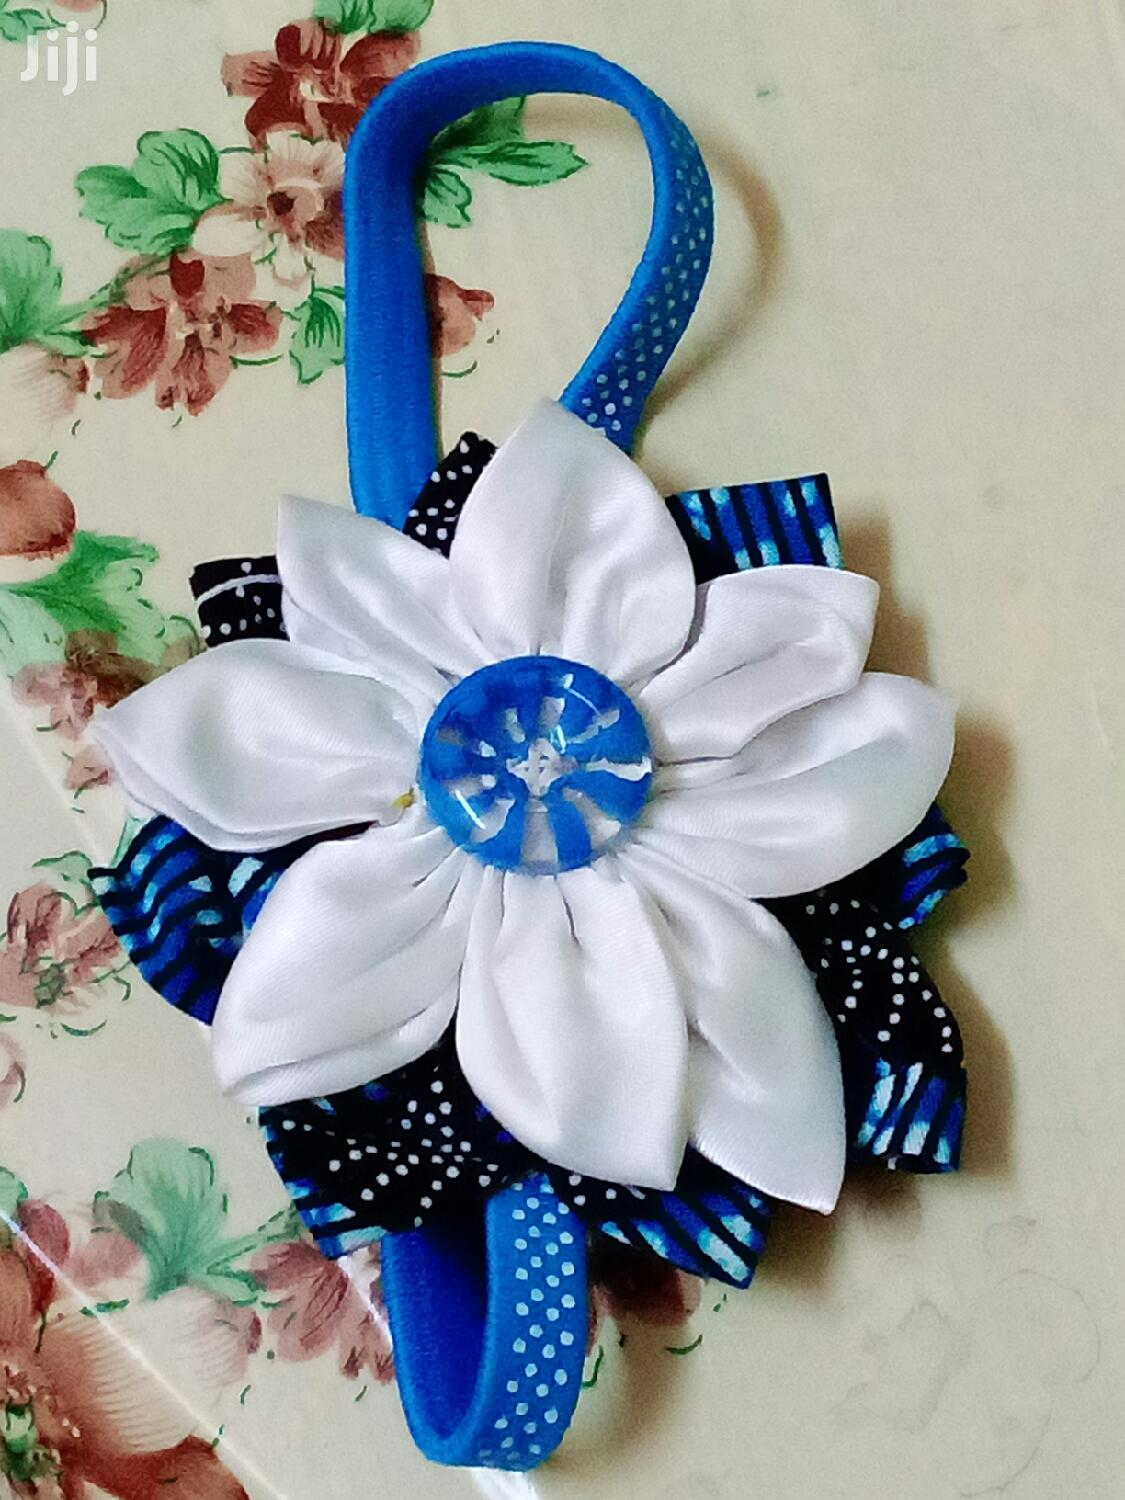 Archive: Headbands ,Brooches and Other Hair Accessories